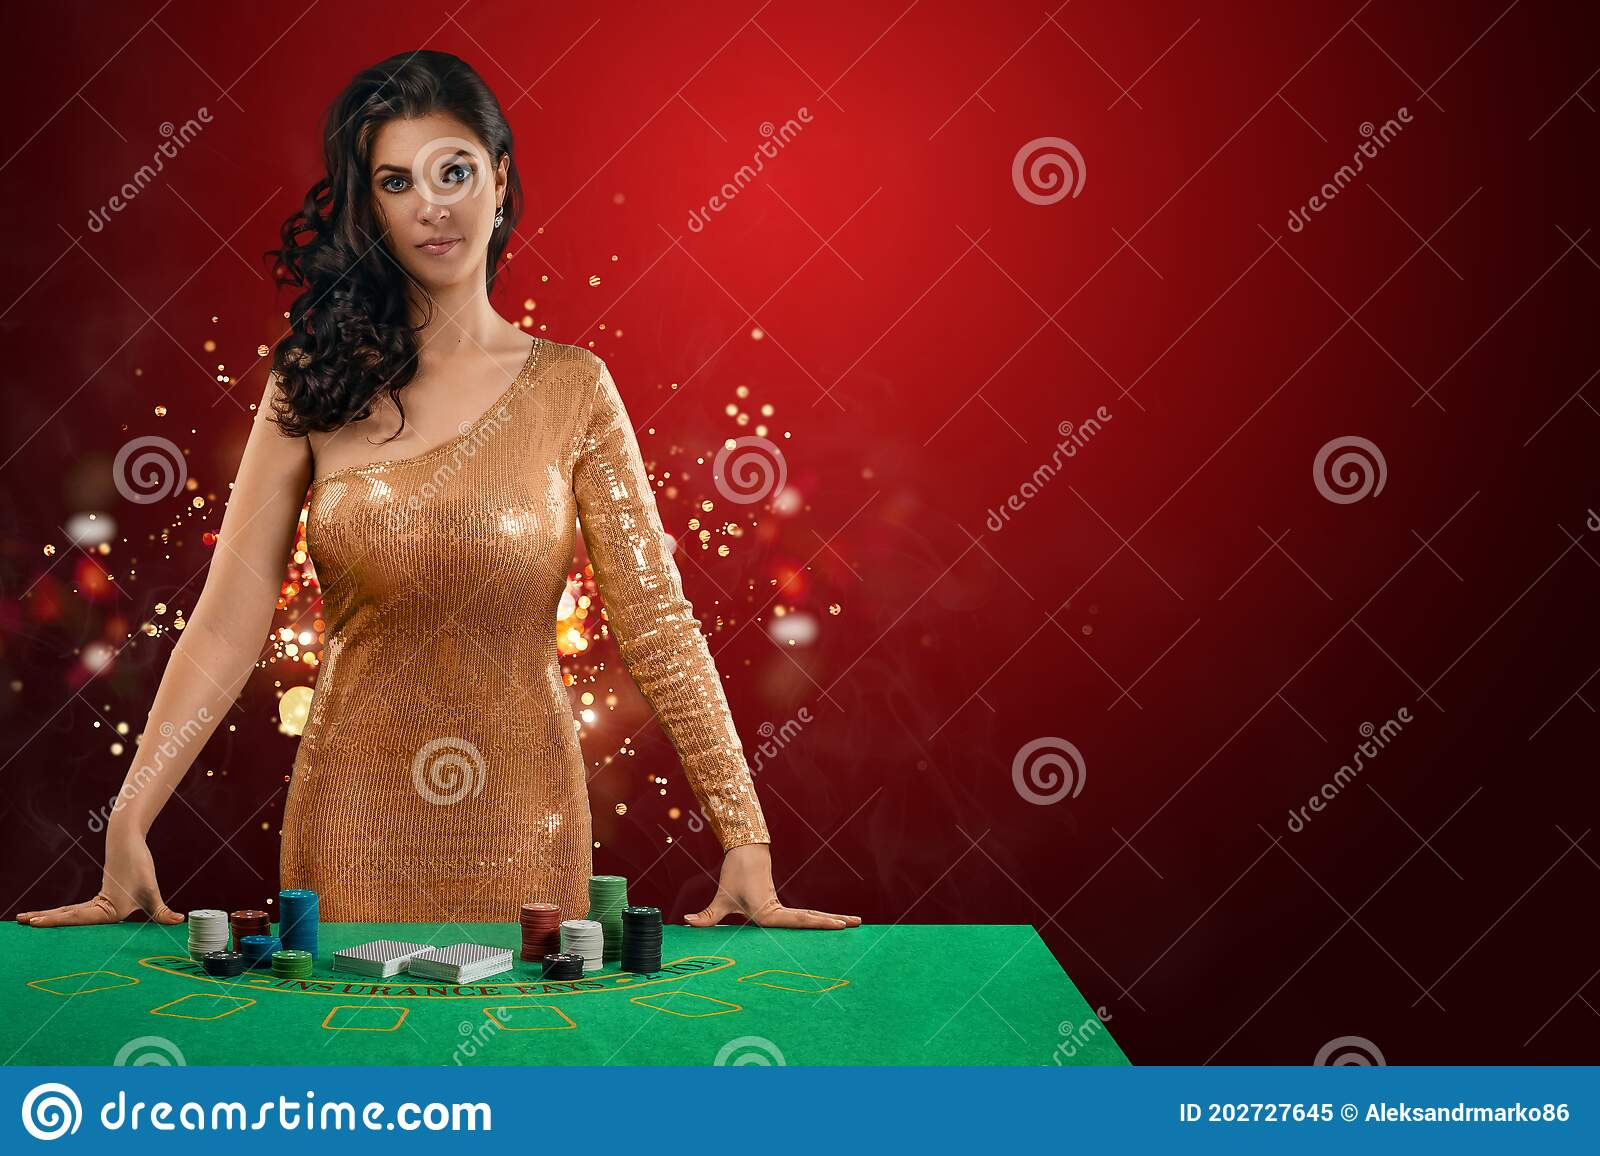 Casino Girl Outfit 153096